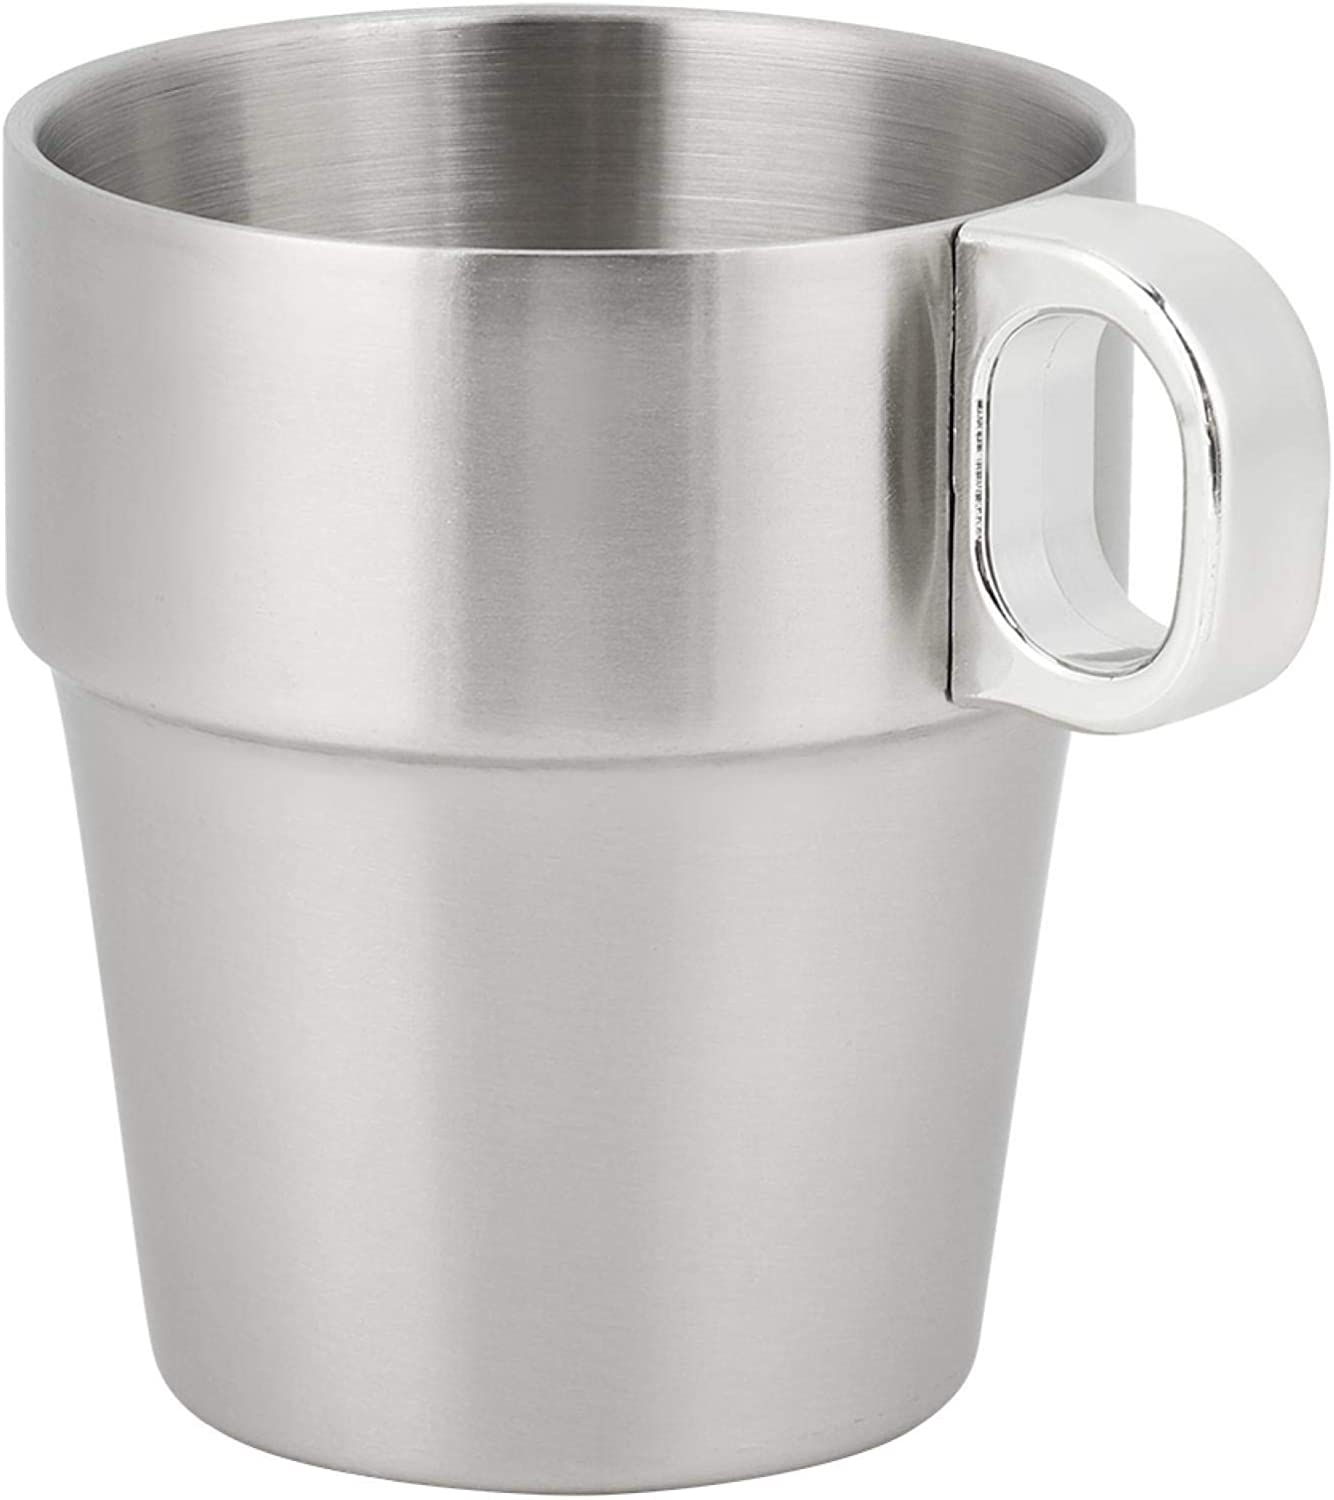 Cup Set Arlington Mall Anti-Scald Reusable Water Stackable with Holder Great interest